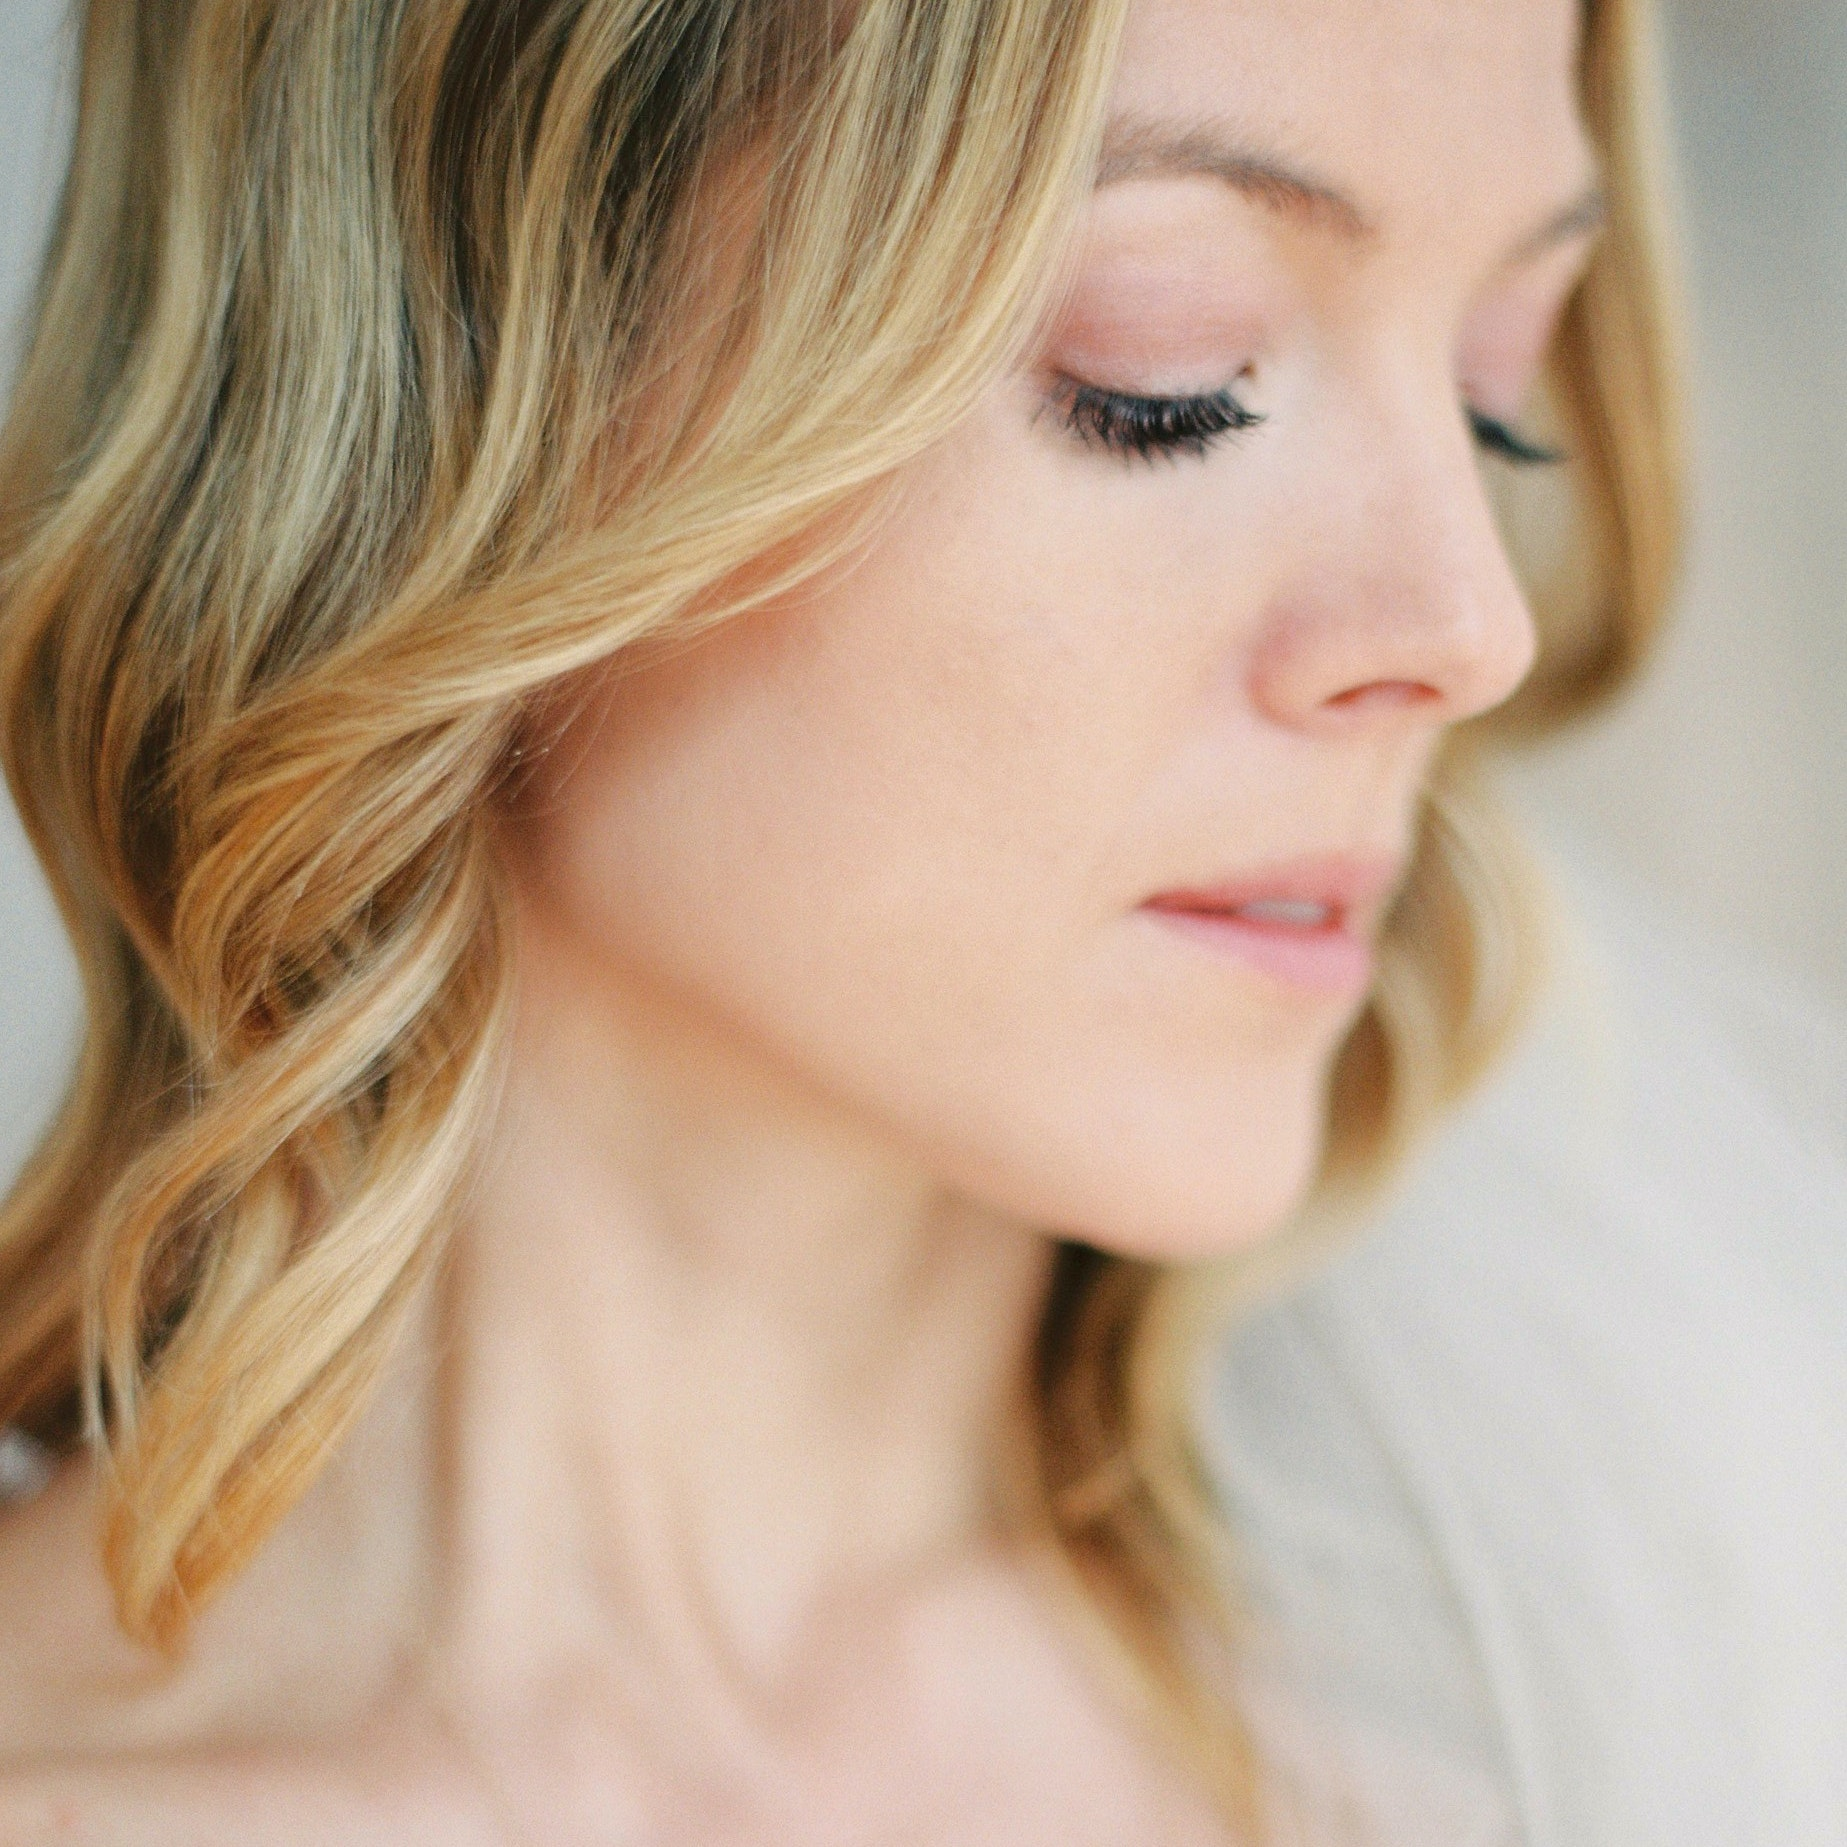 I Incorporated Aesthetic Treatments Into My Wedding Day Countdown: Here's My Timeline